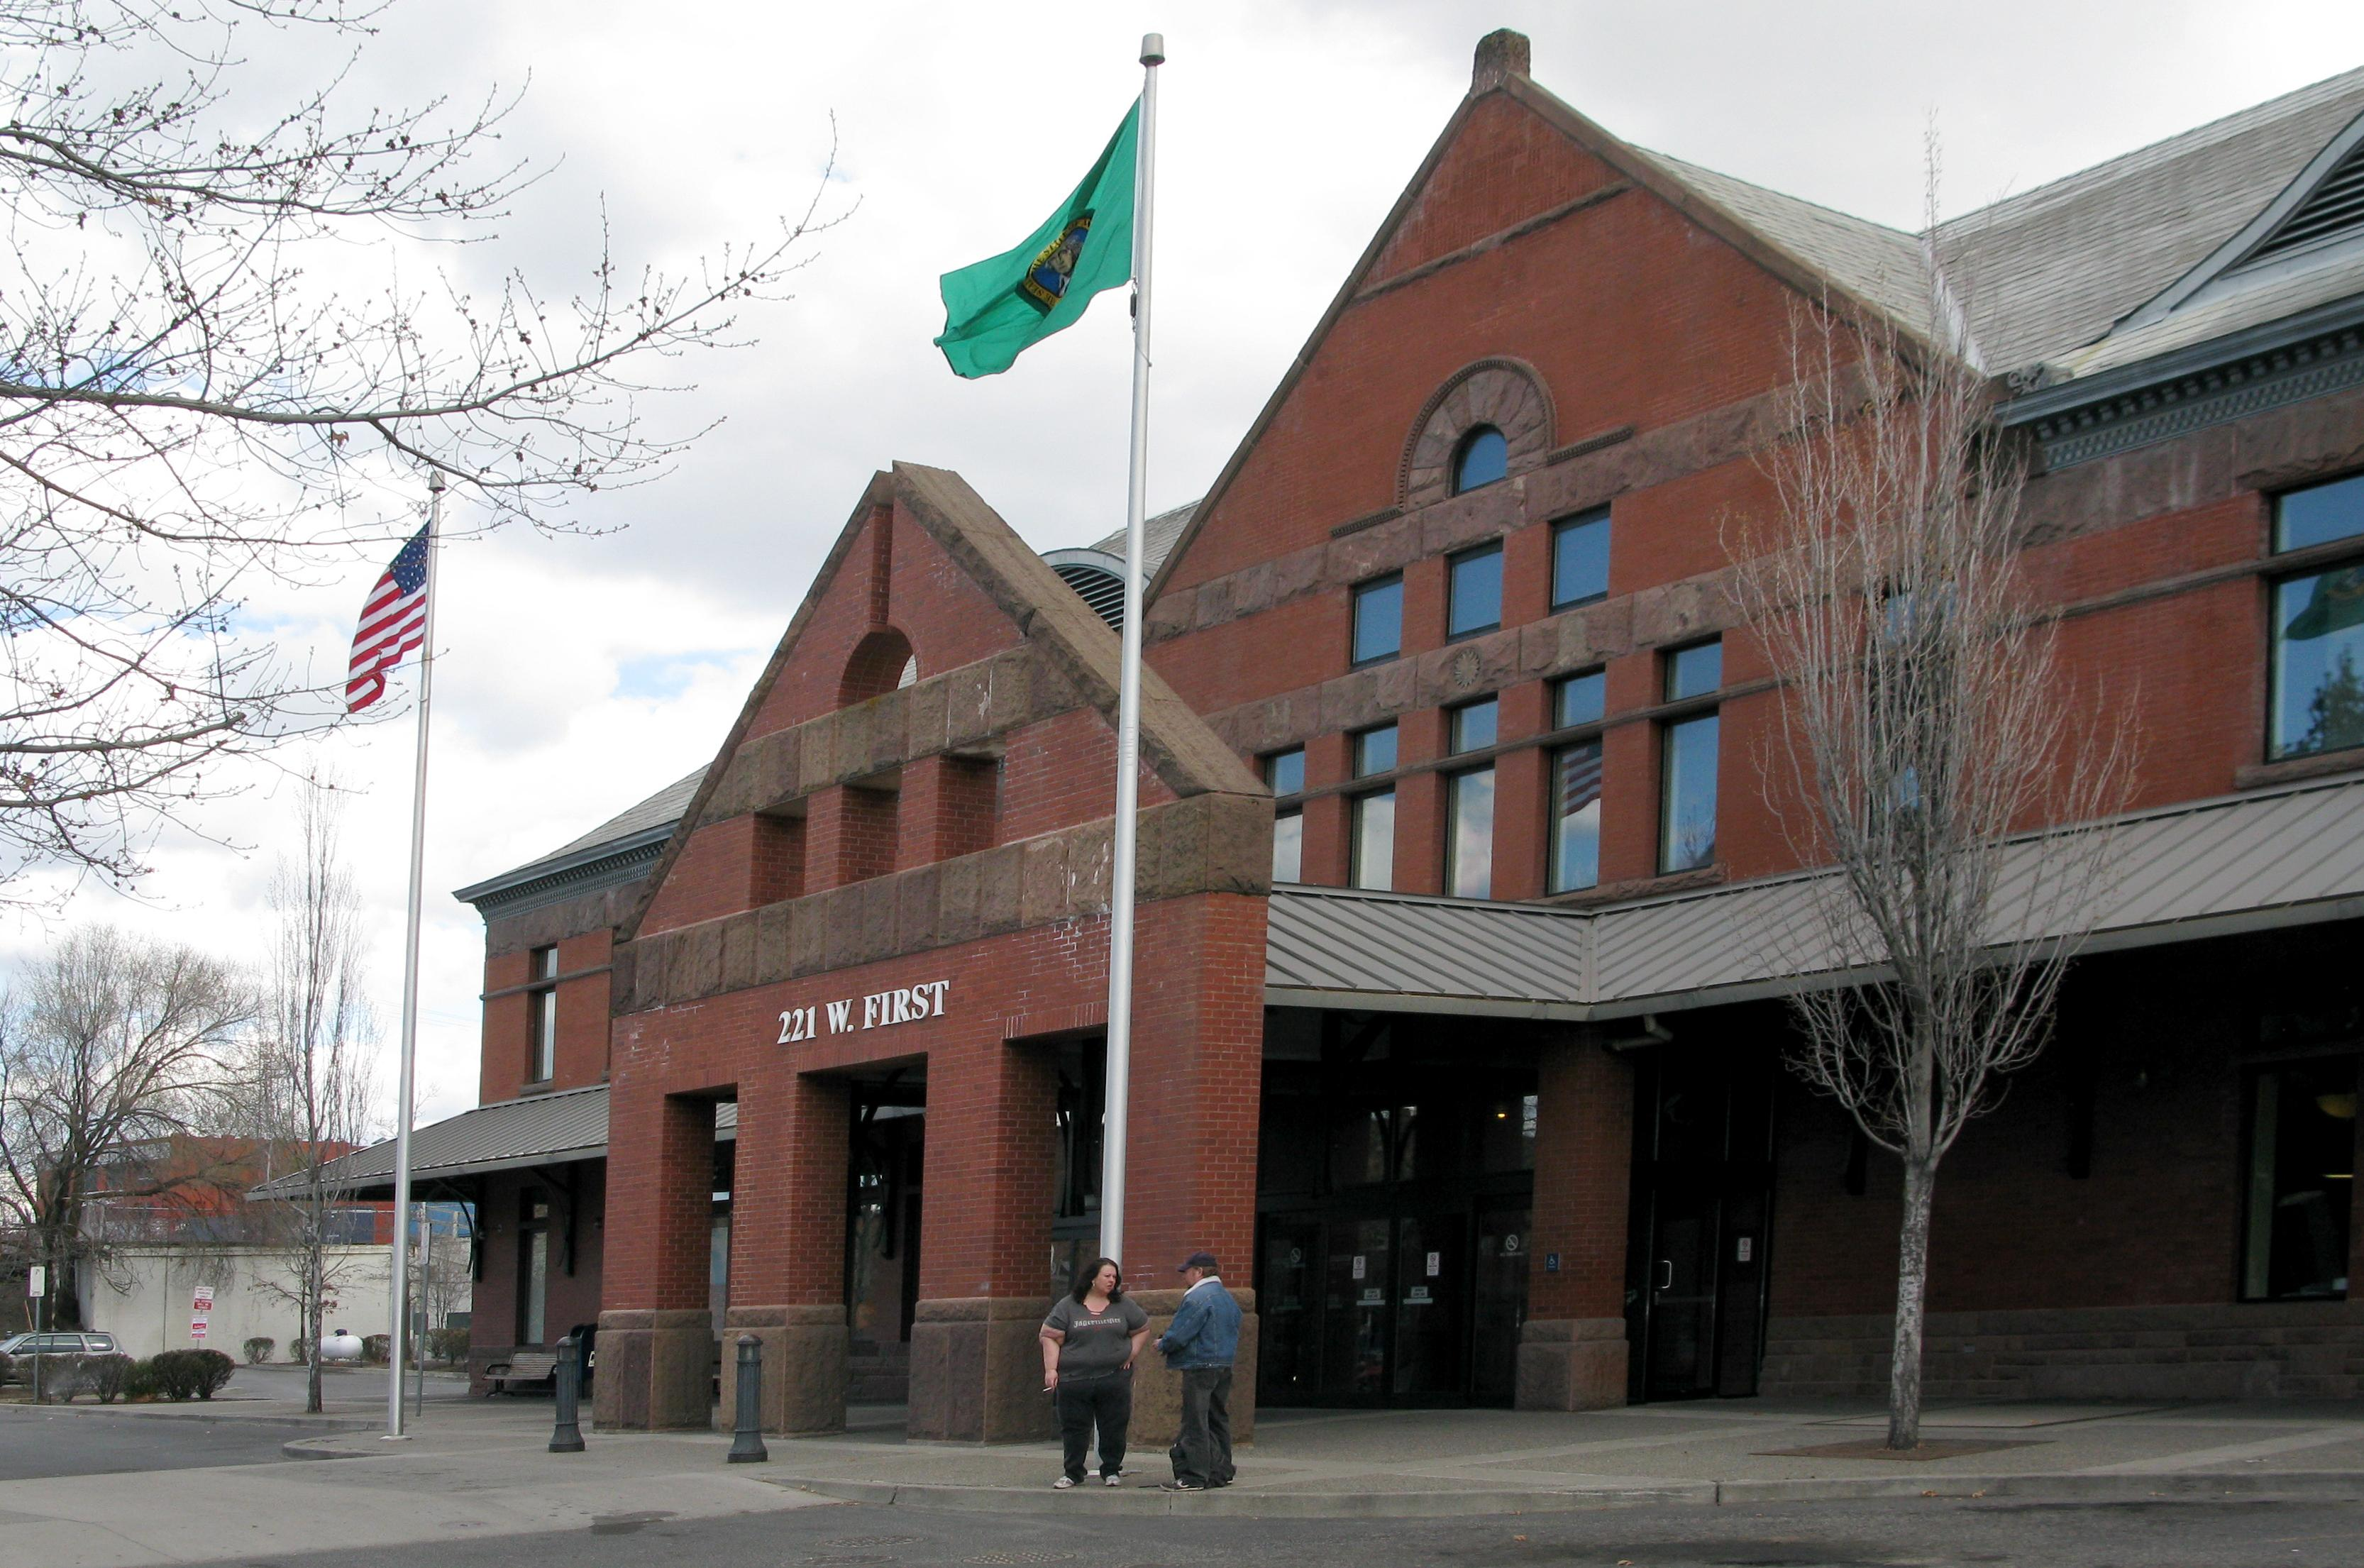 Immigration officials continue to operate at Spokane